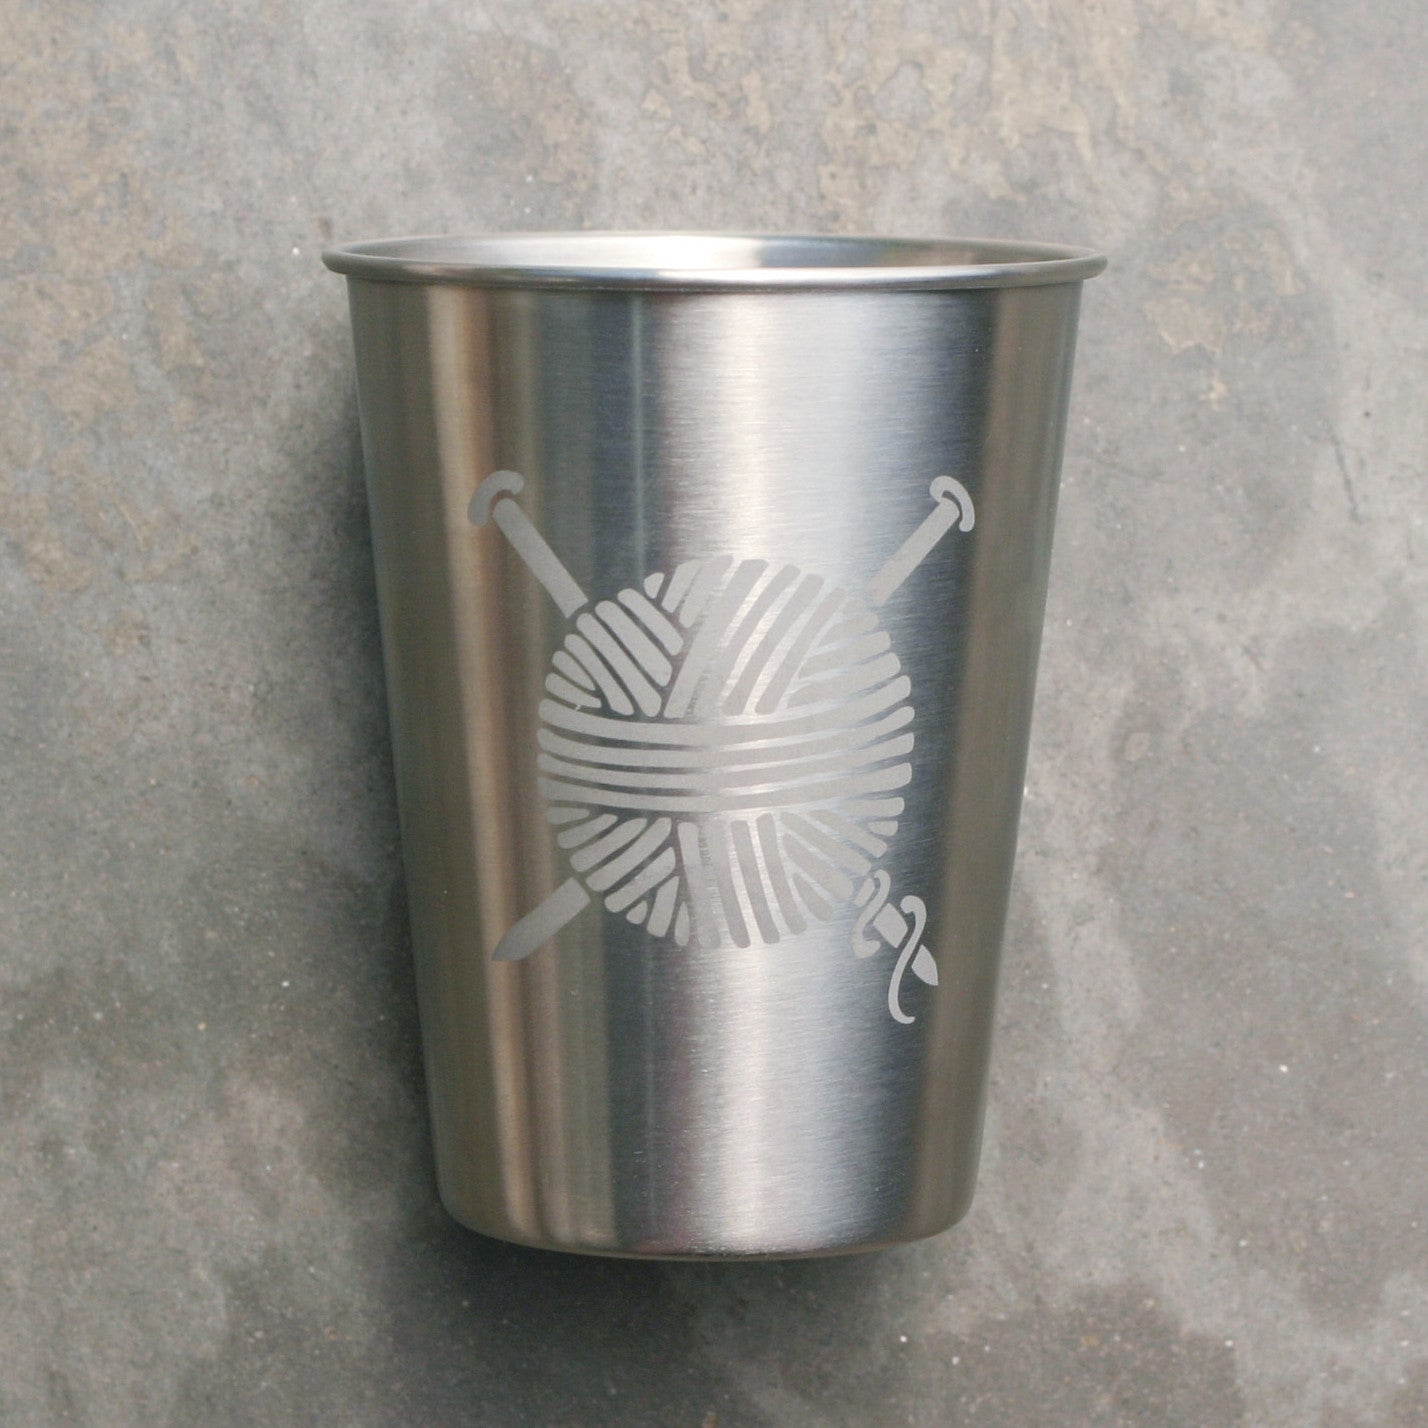 Knitting 12oz stainless cup